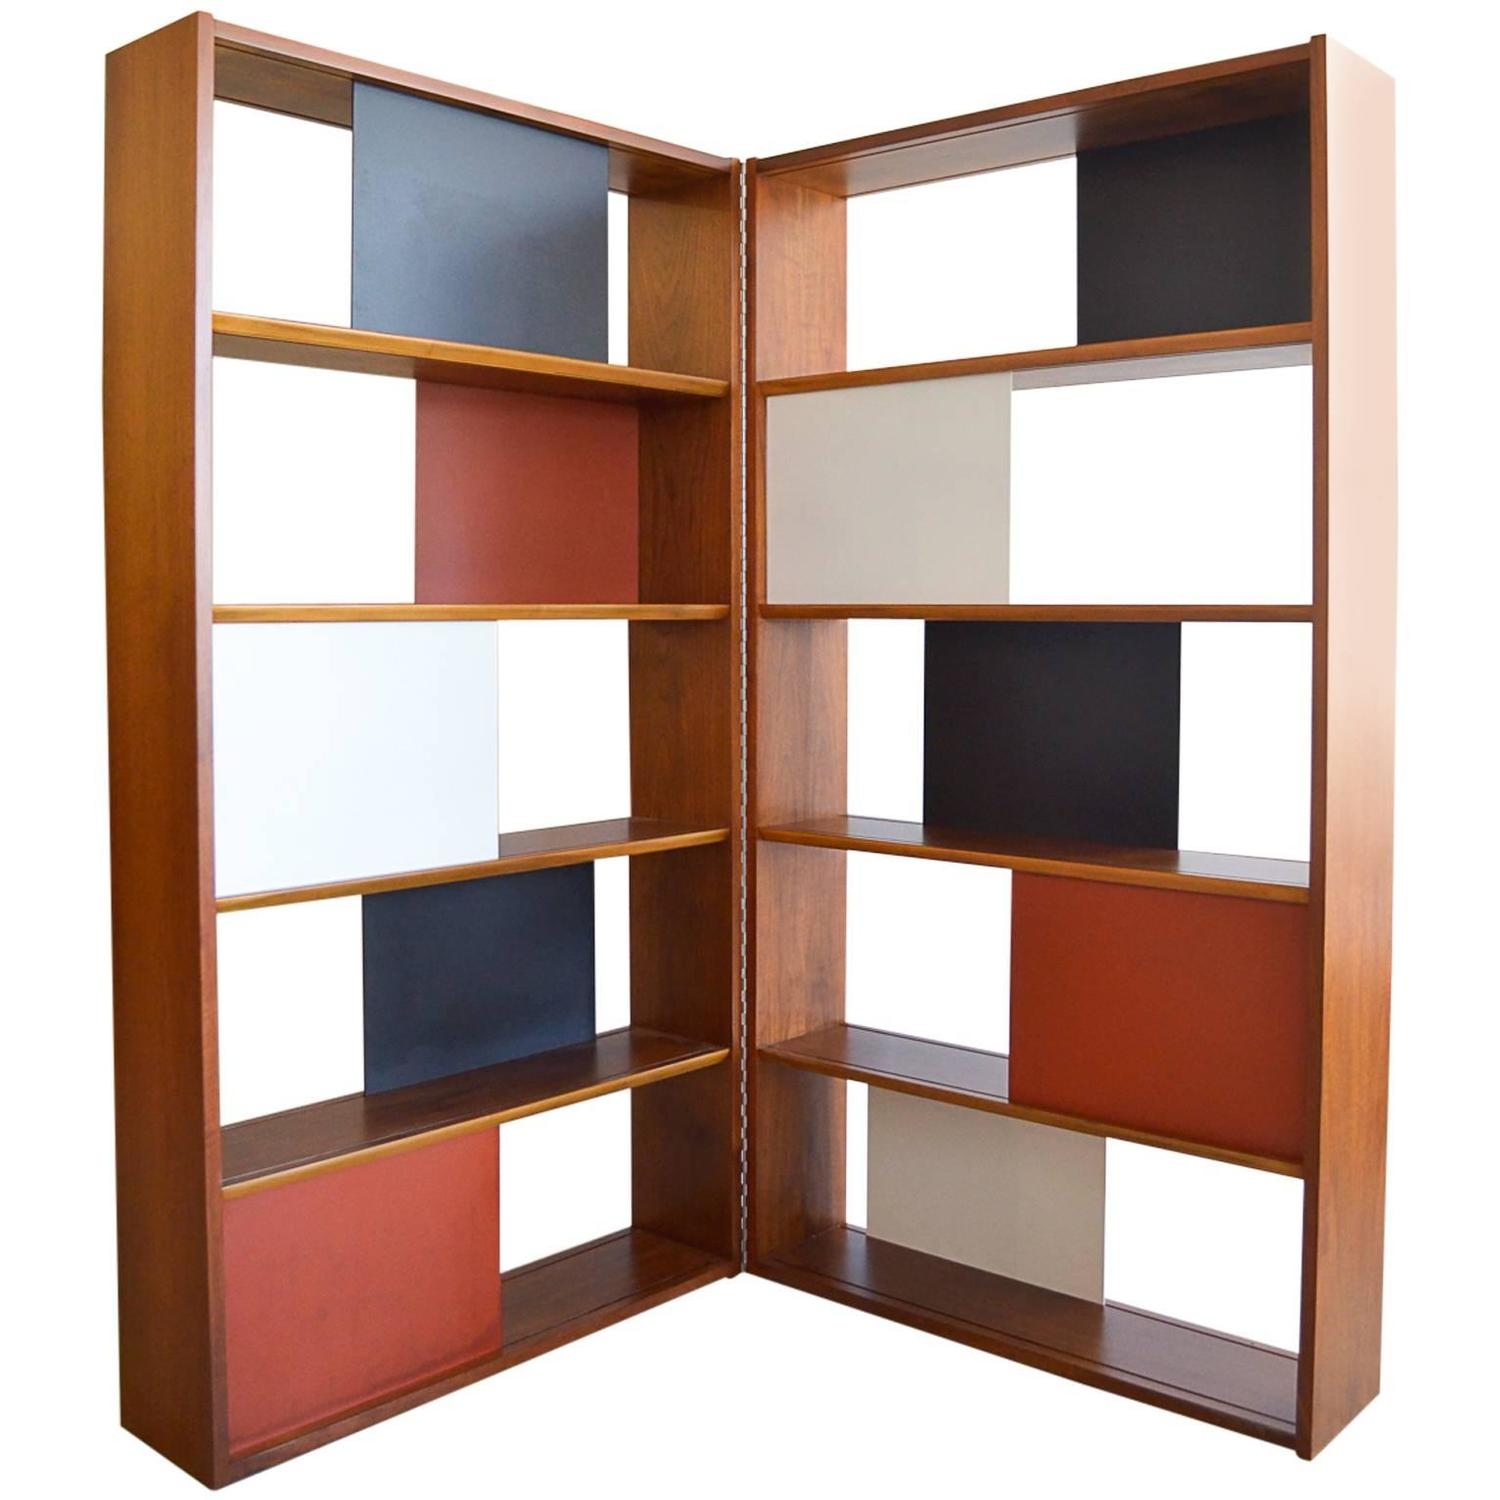 Very Impressive portraiture of Room Divider or Hinged Bookcase by Evans Clark for Glenn of California  with #79381D color and 1500x1500 pixels